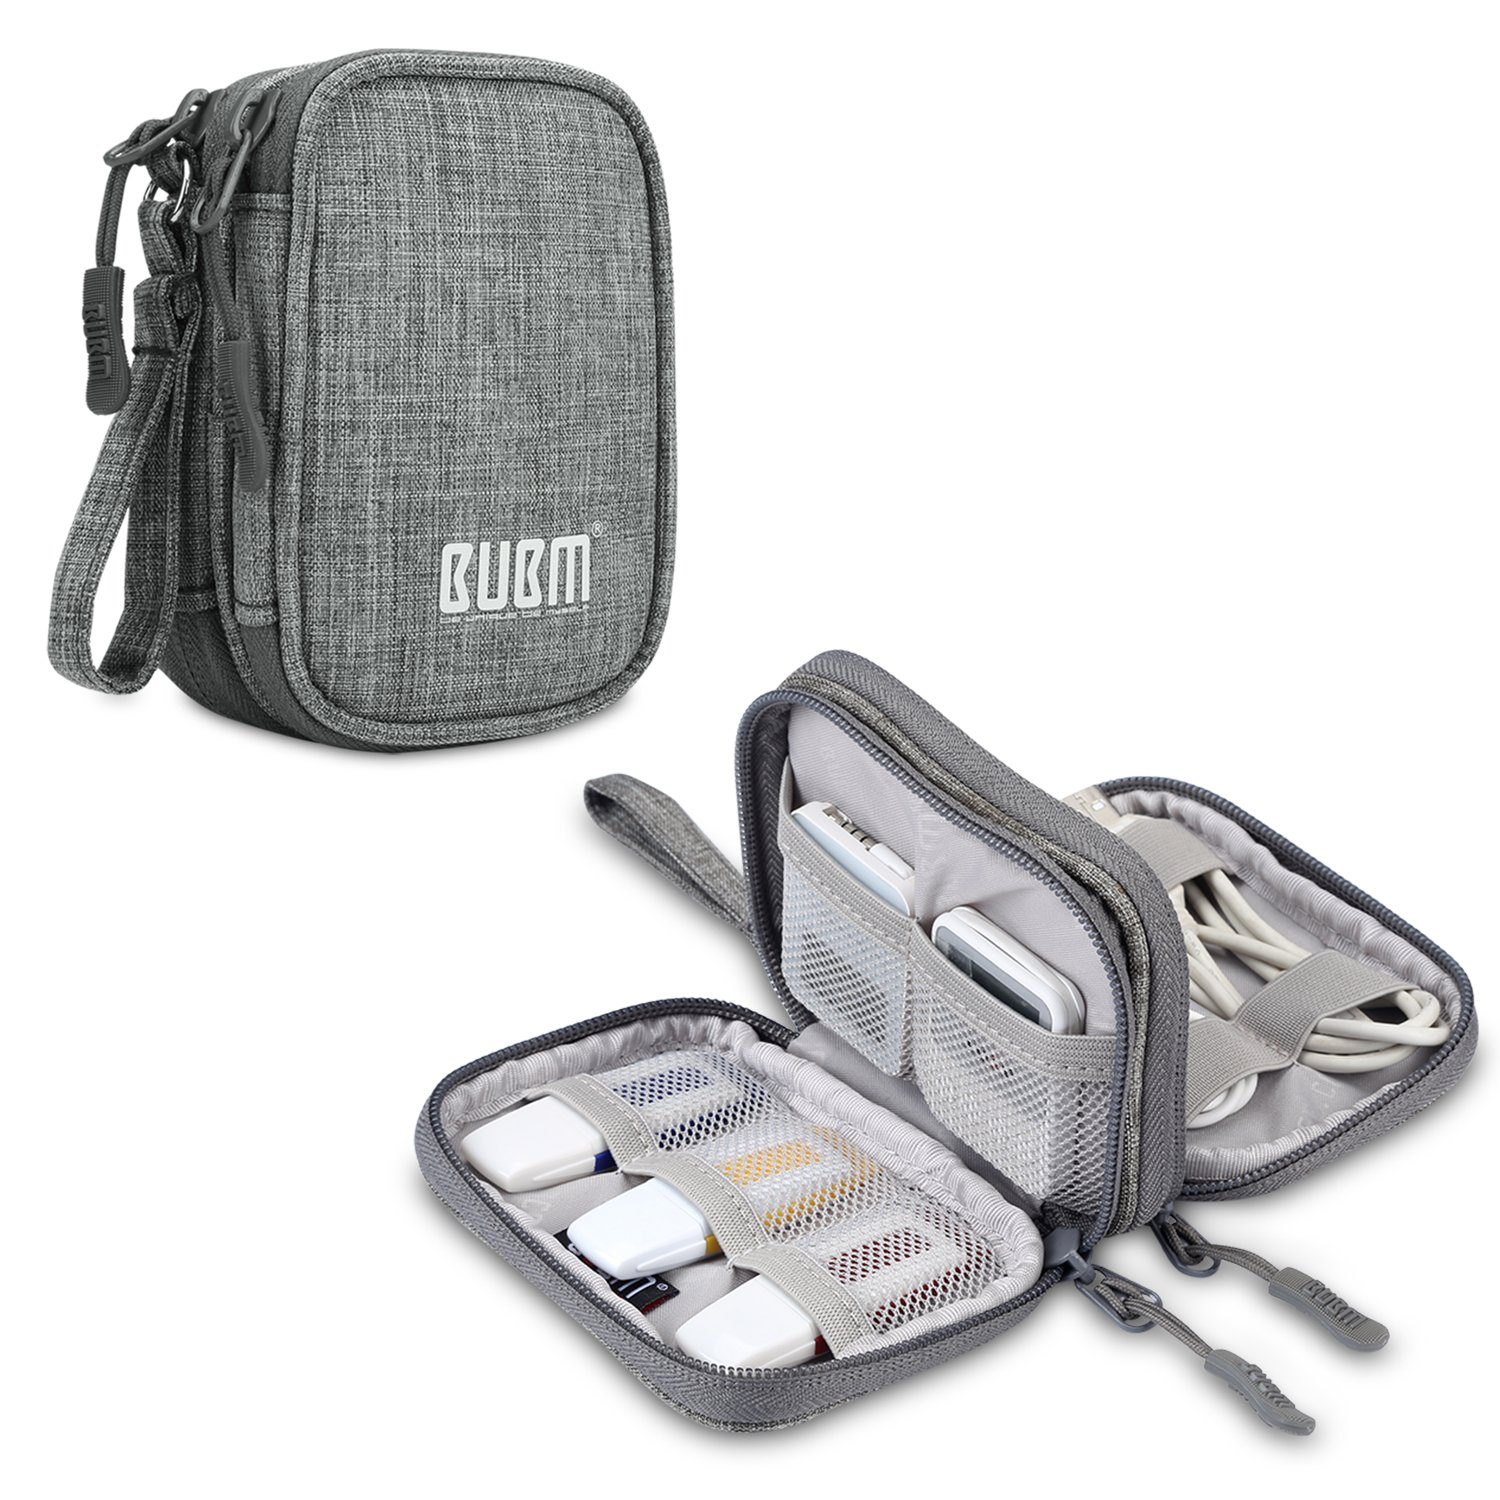 BUBM USB Flash Drive Case (8 -capacity), Carrying Bag for USB Flash Drives, SD Cards, USB Cables and Other Small Accessories, Gray